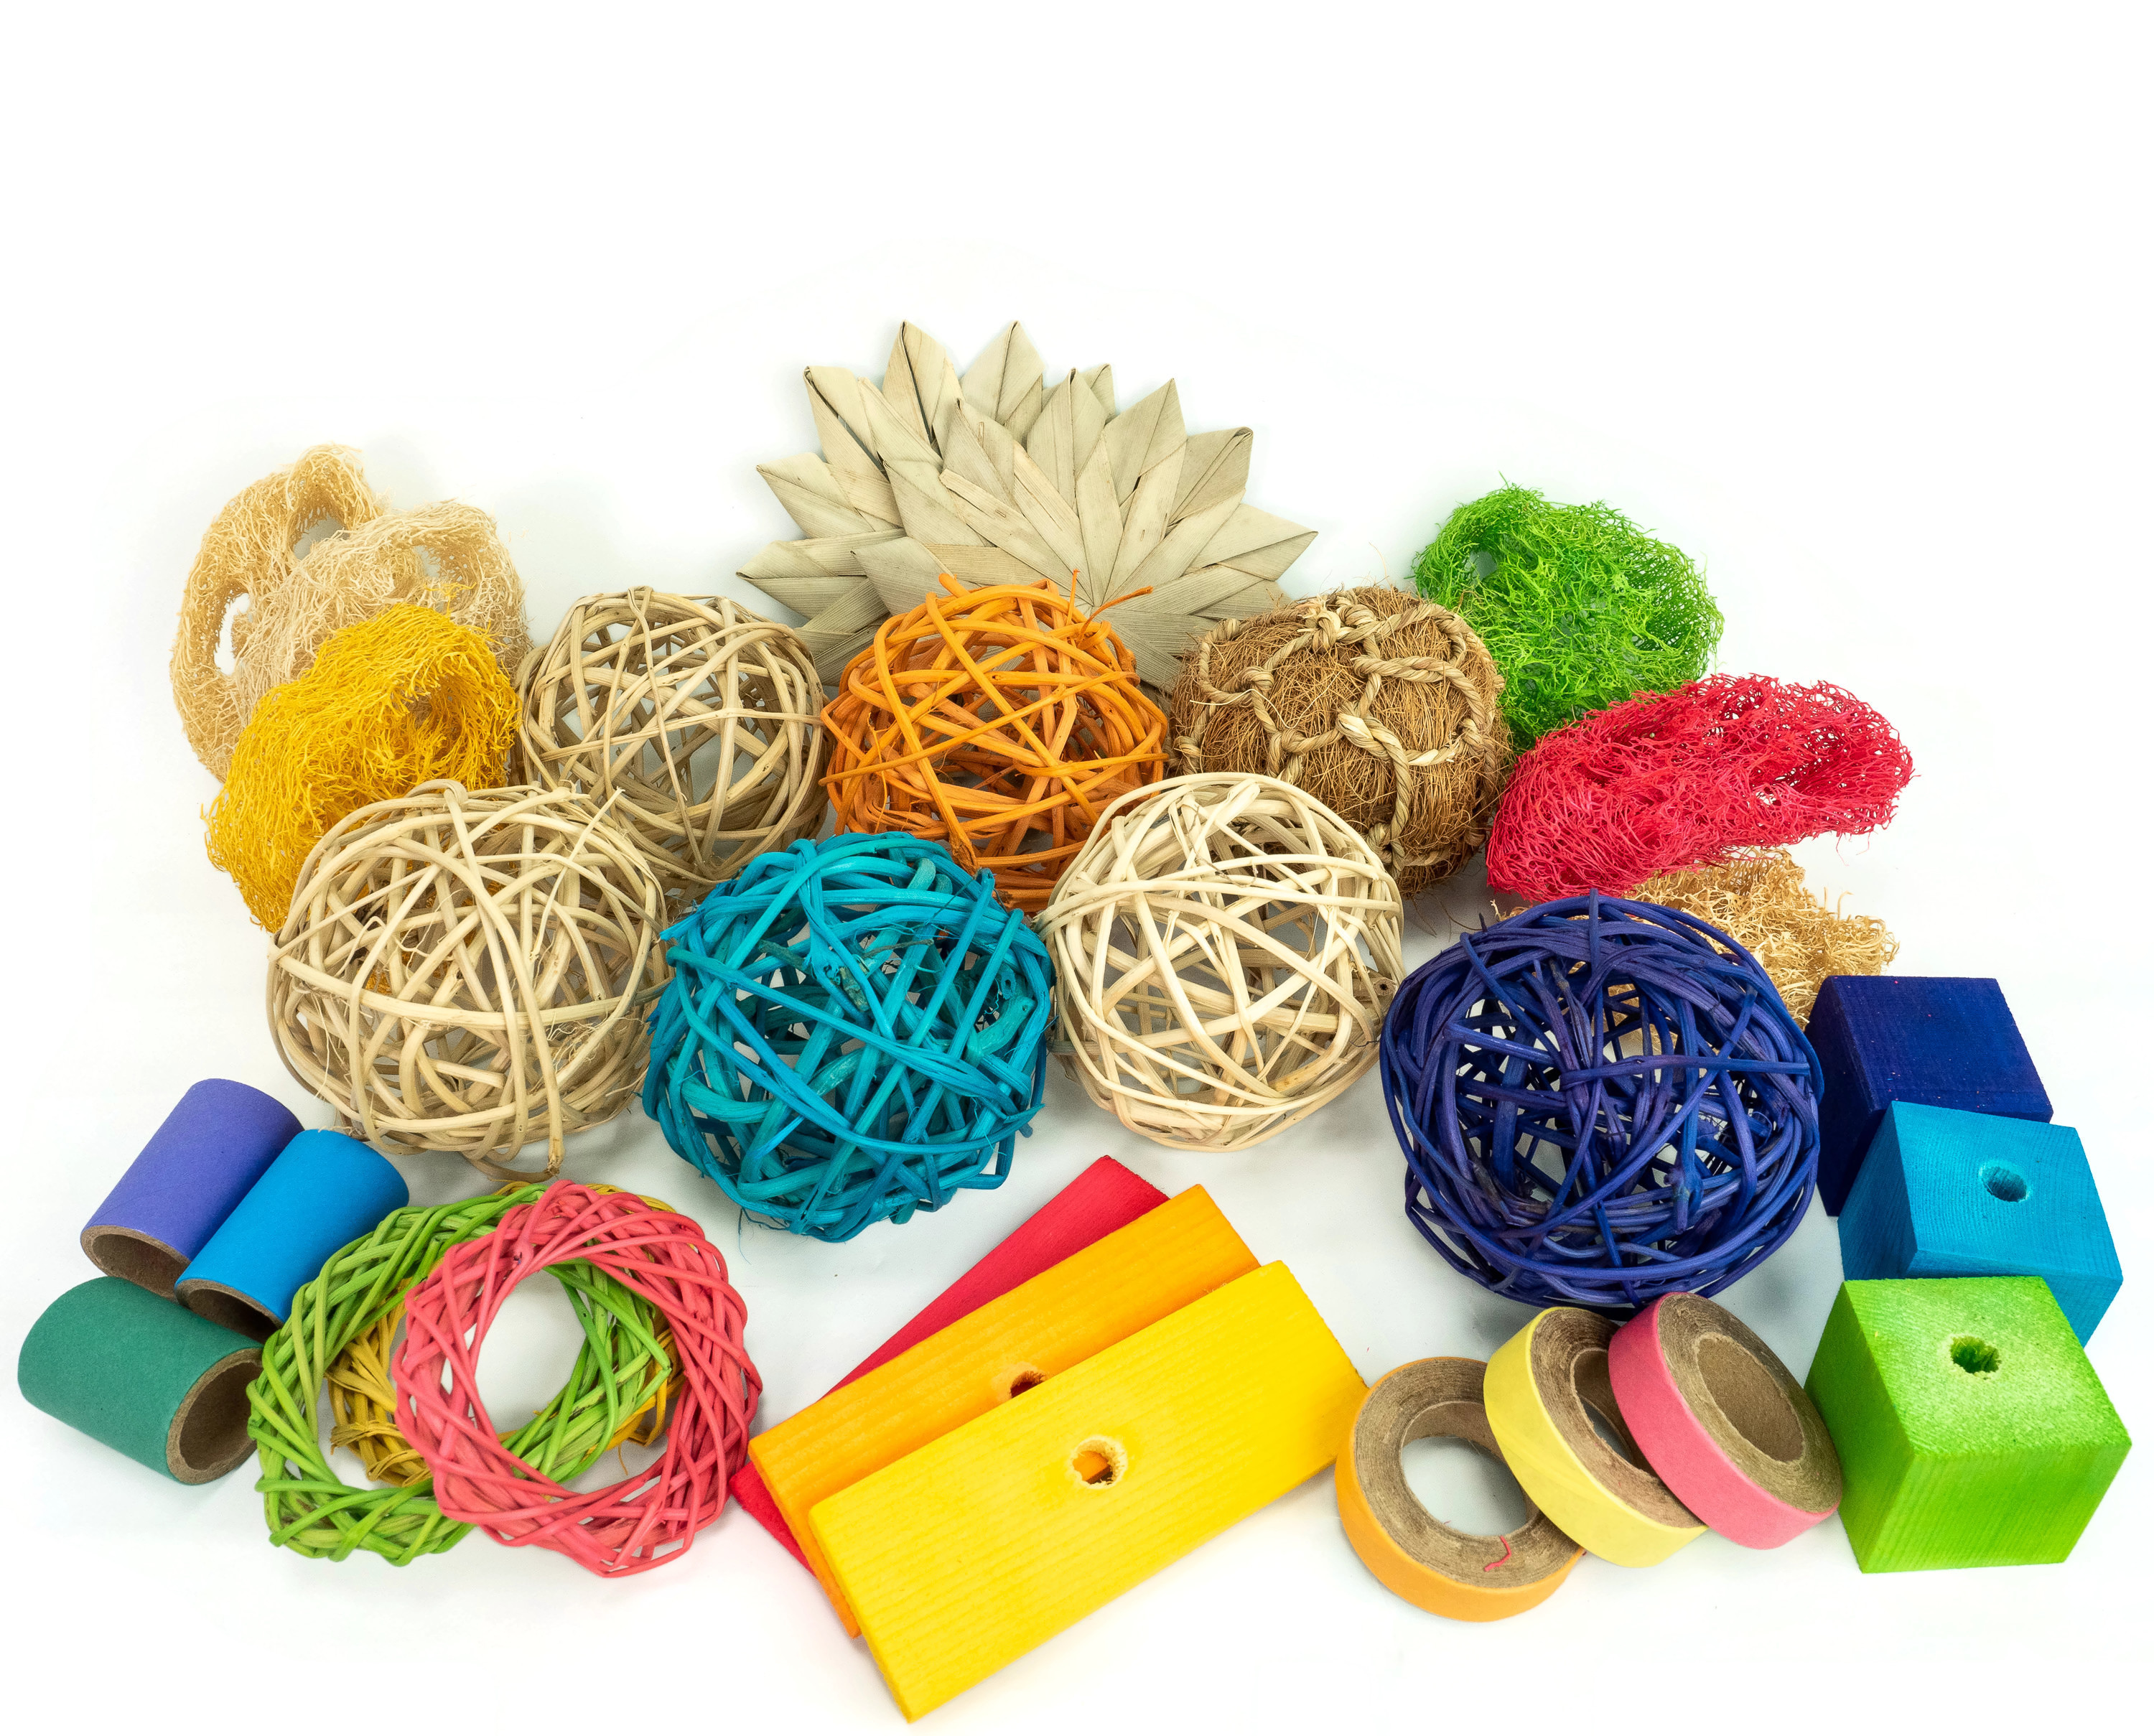 Colorful Multi-toy Collection - Chew Toys for Bunny Rabbits, Guinea Pigs and Chinchillas